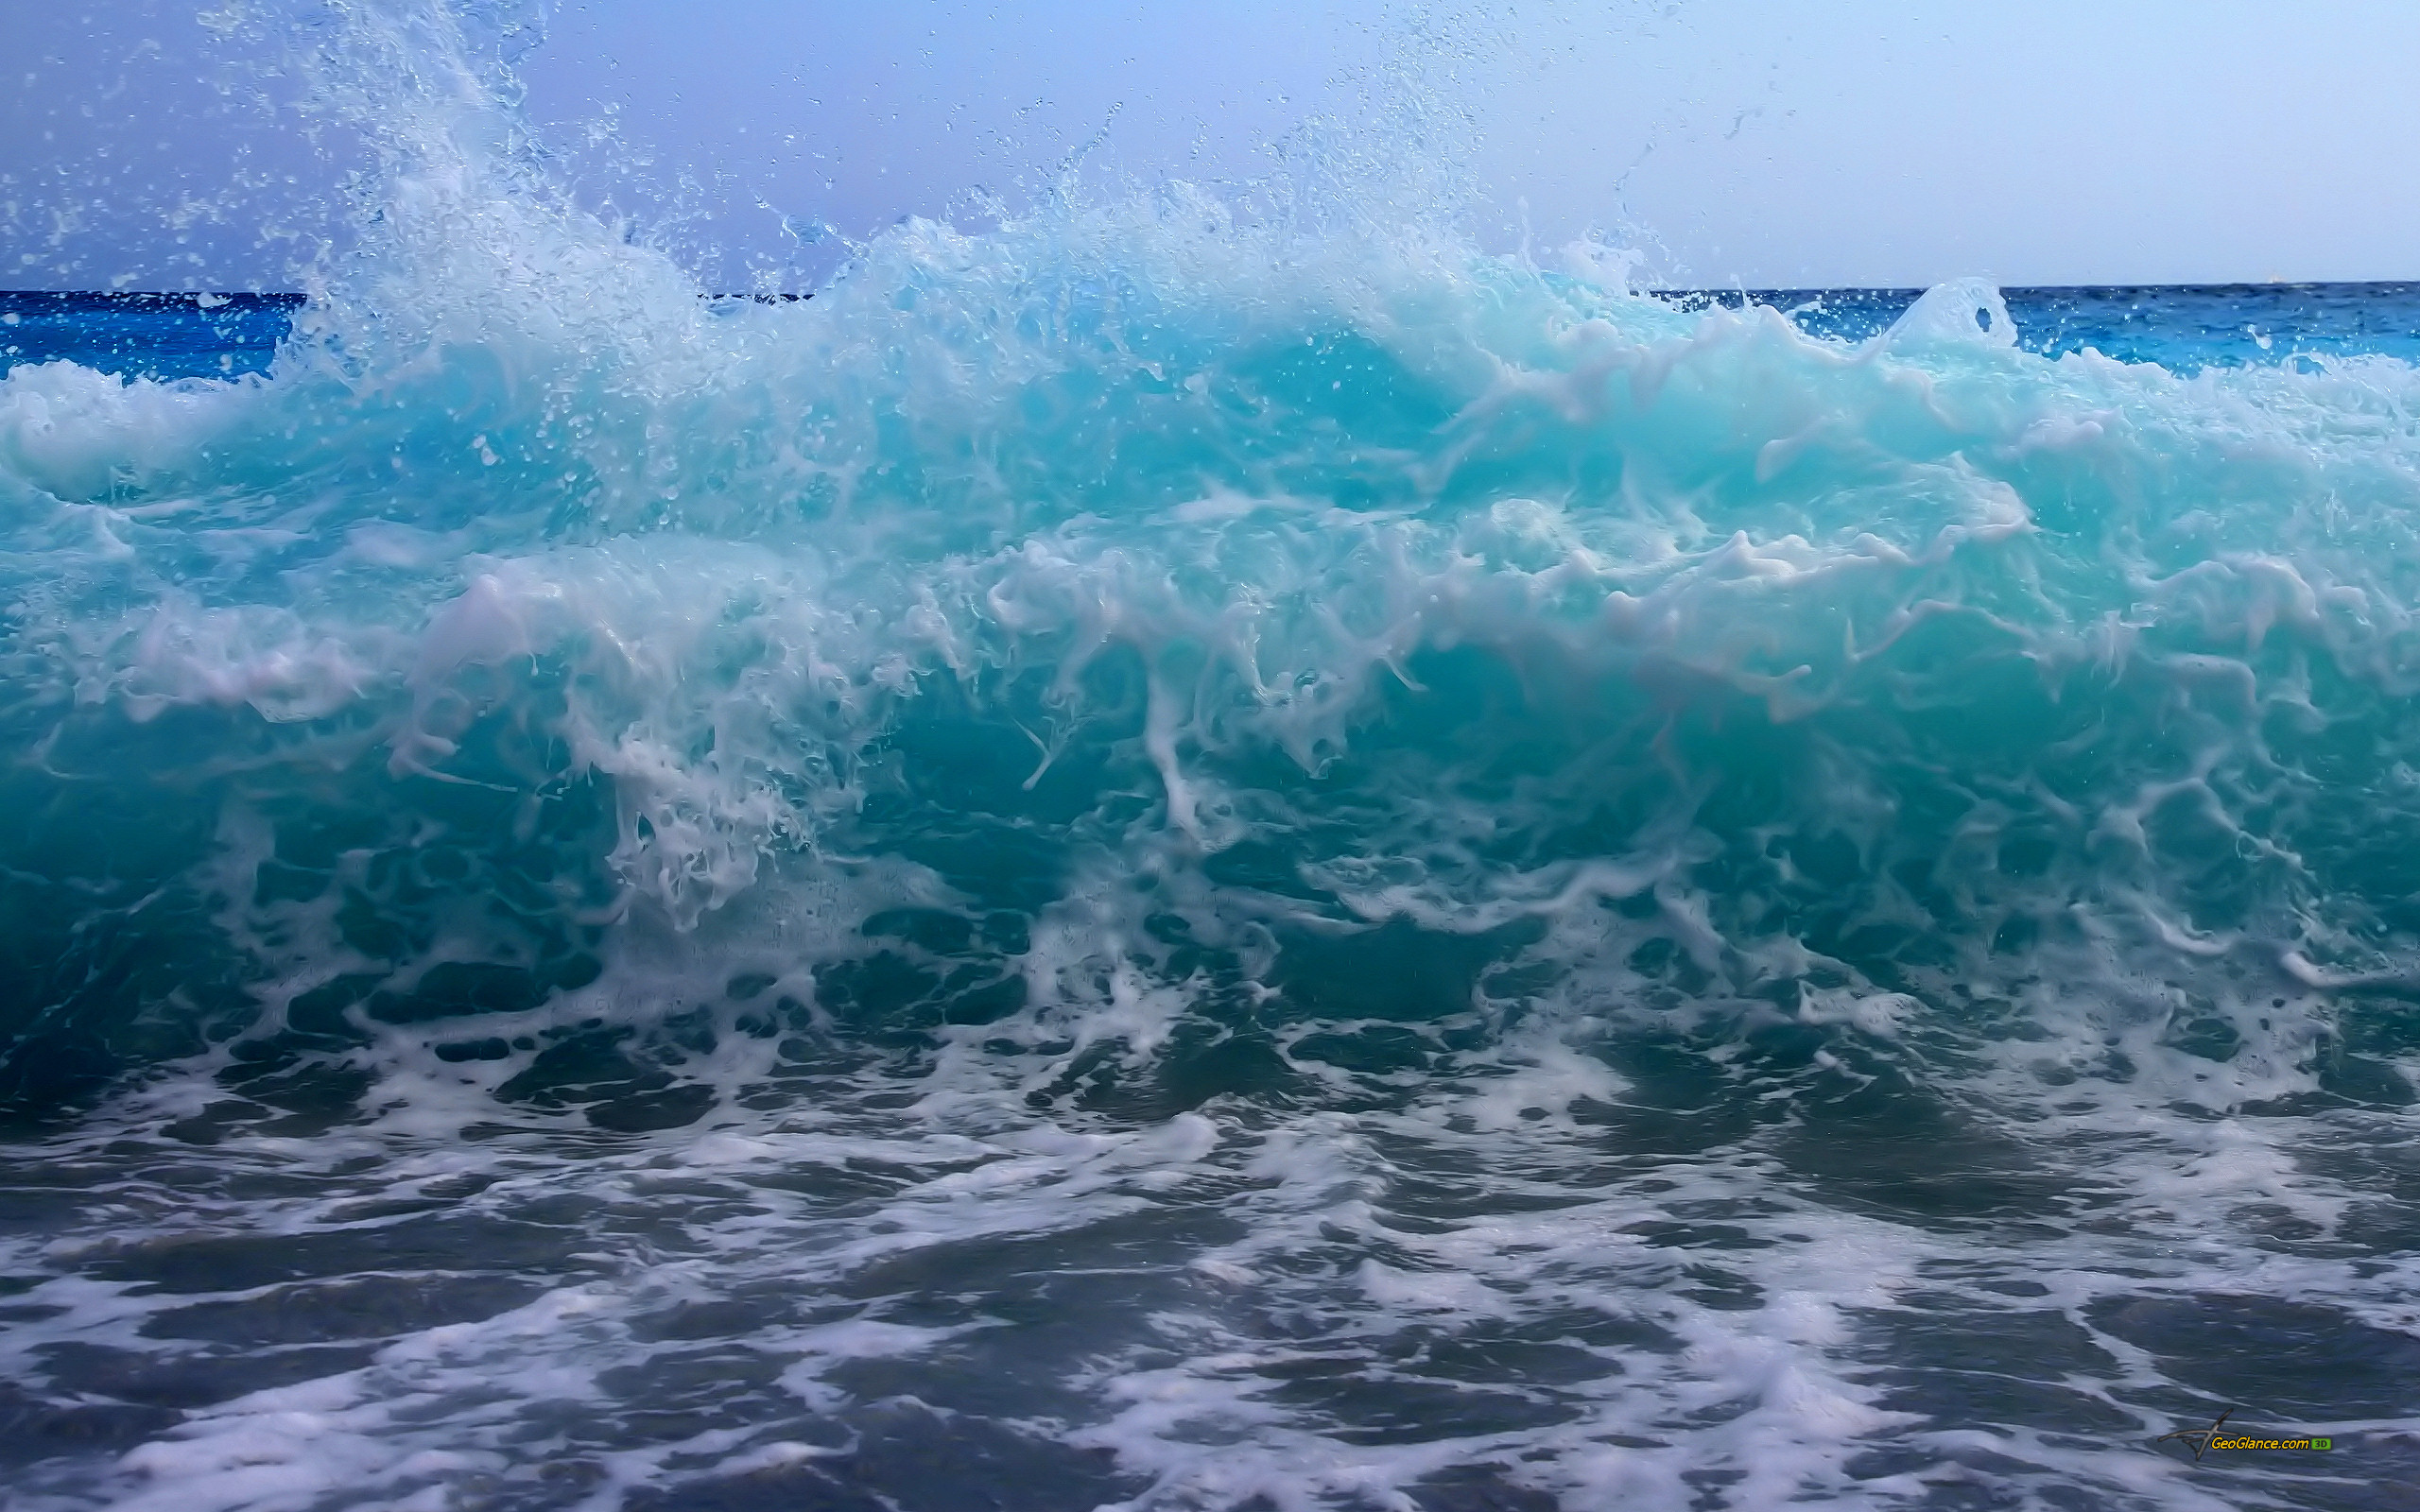 2560x1600 Sea Wave Free Wallpaper And Screensavers 39046 HD Pictures | Top .